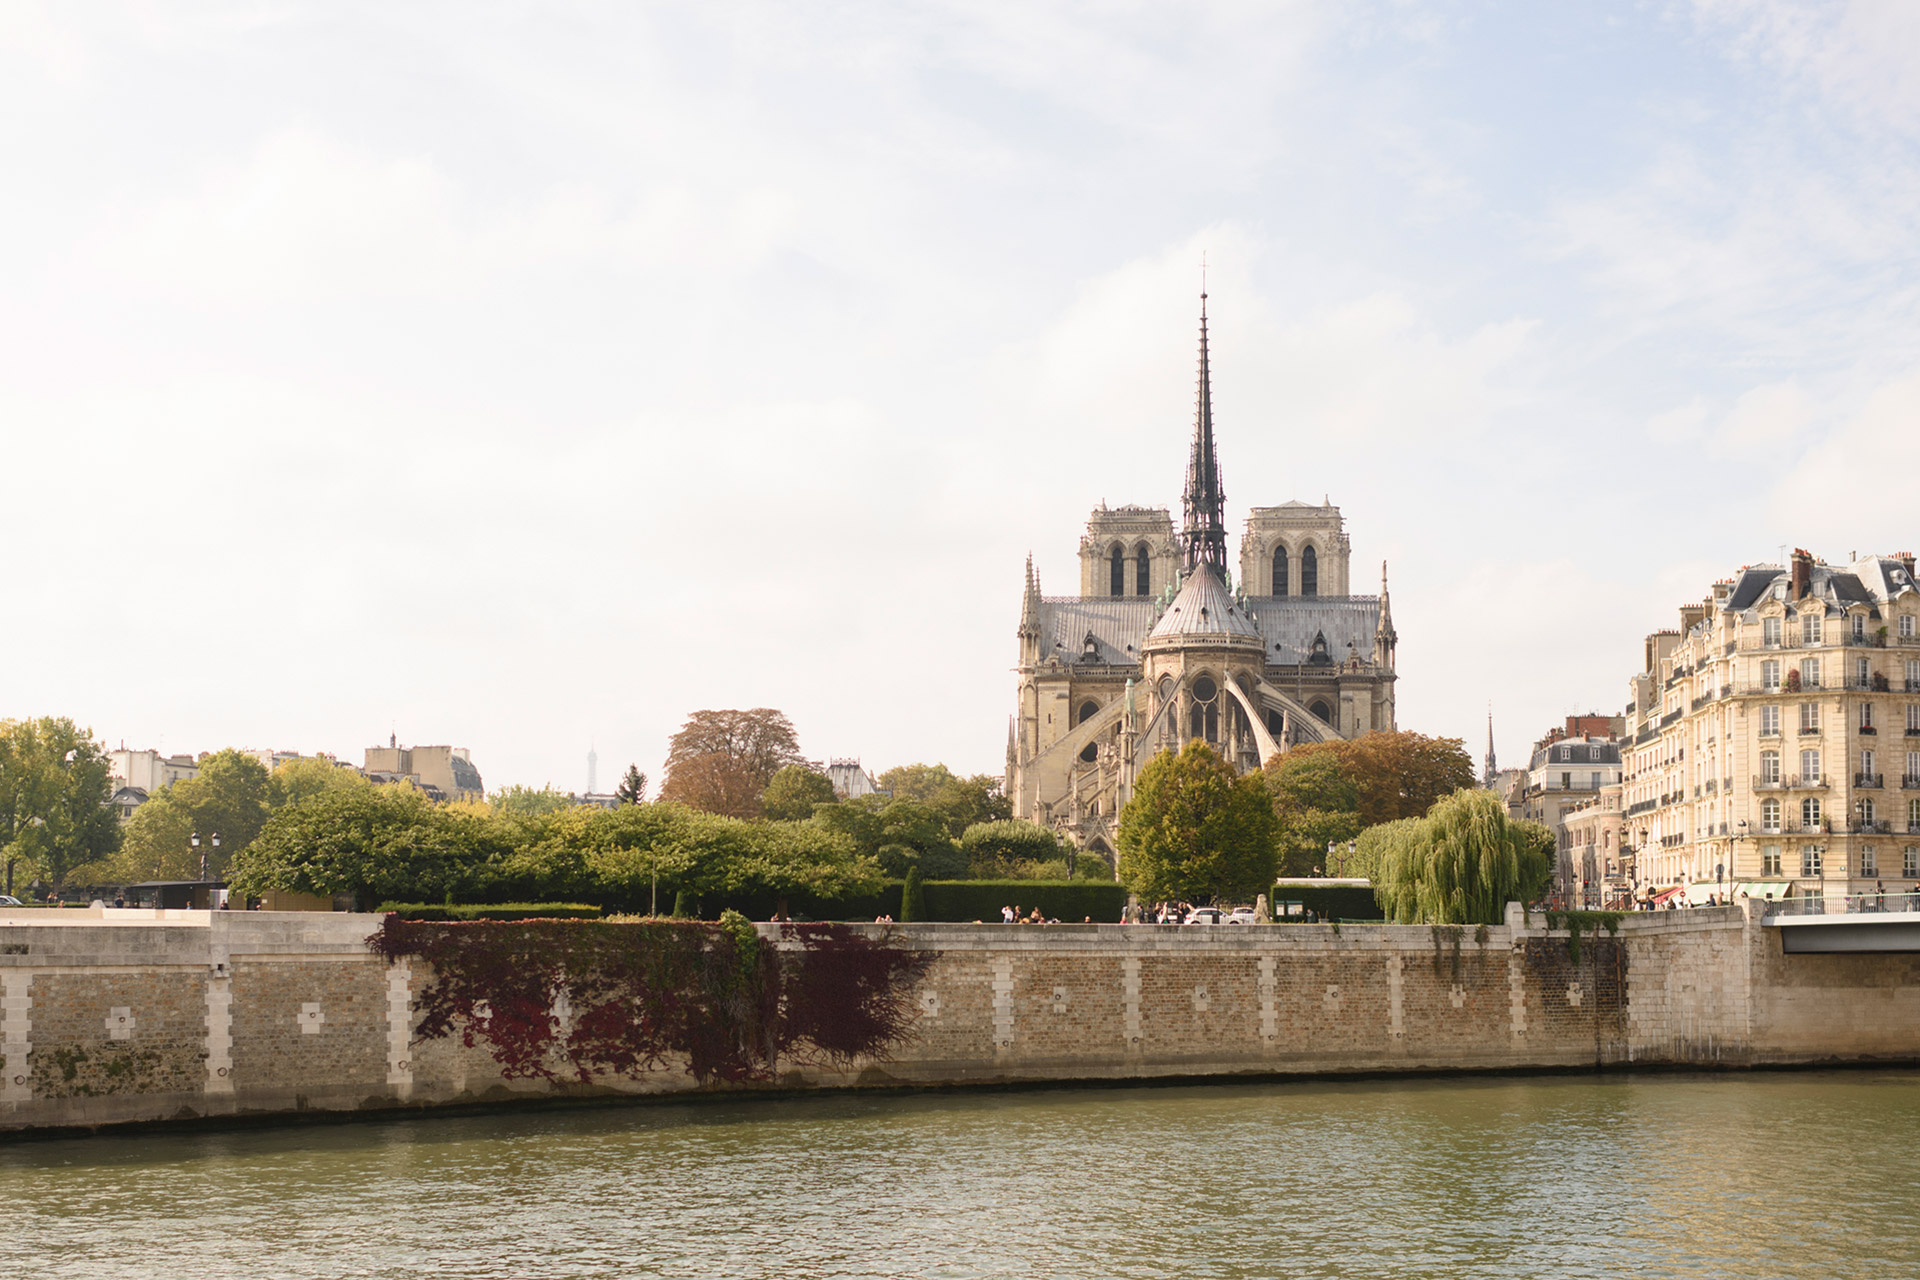 Notre Dame set in the center of the Seine River